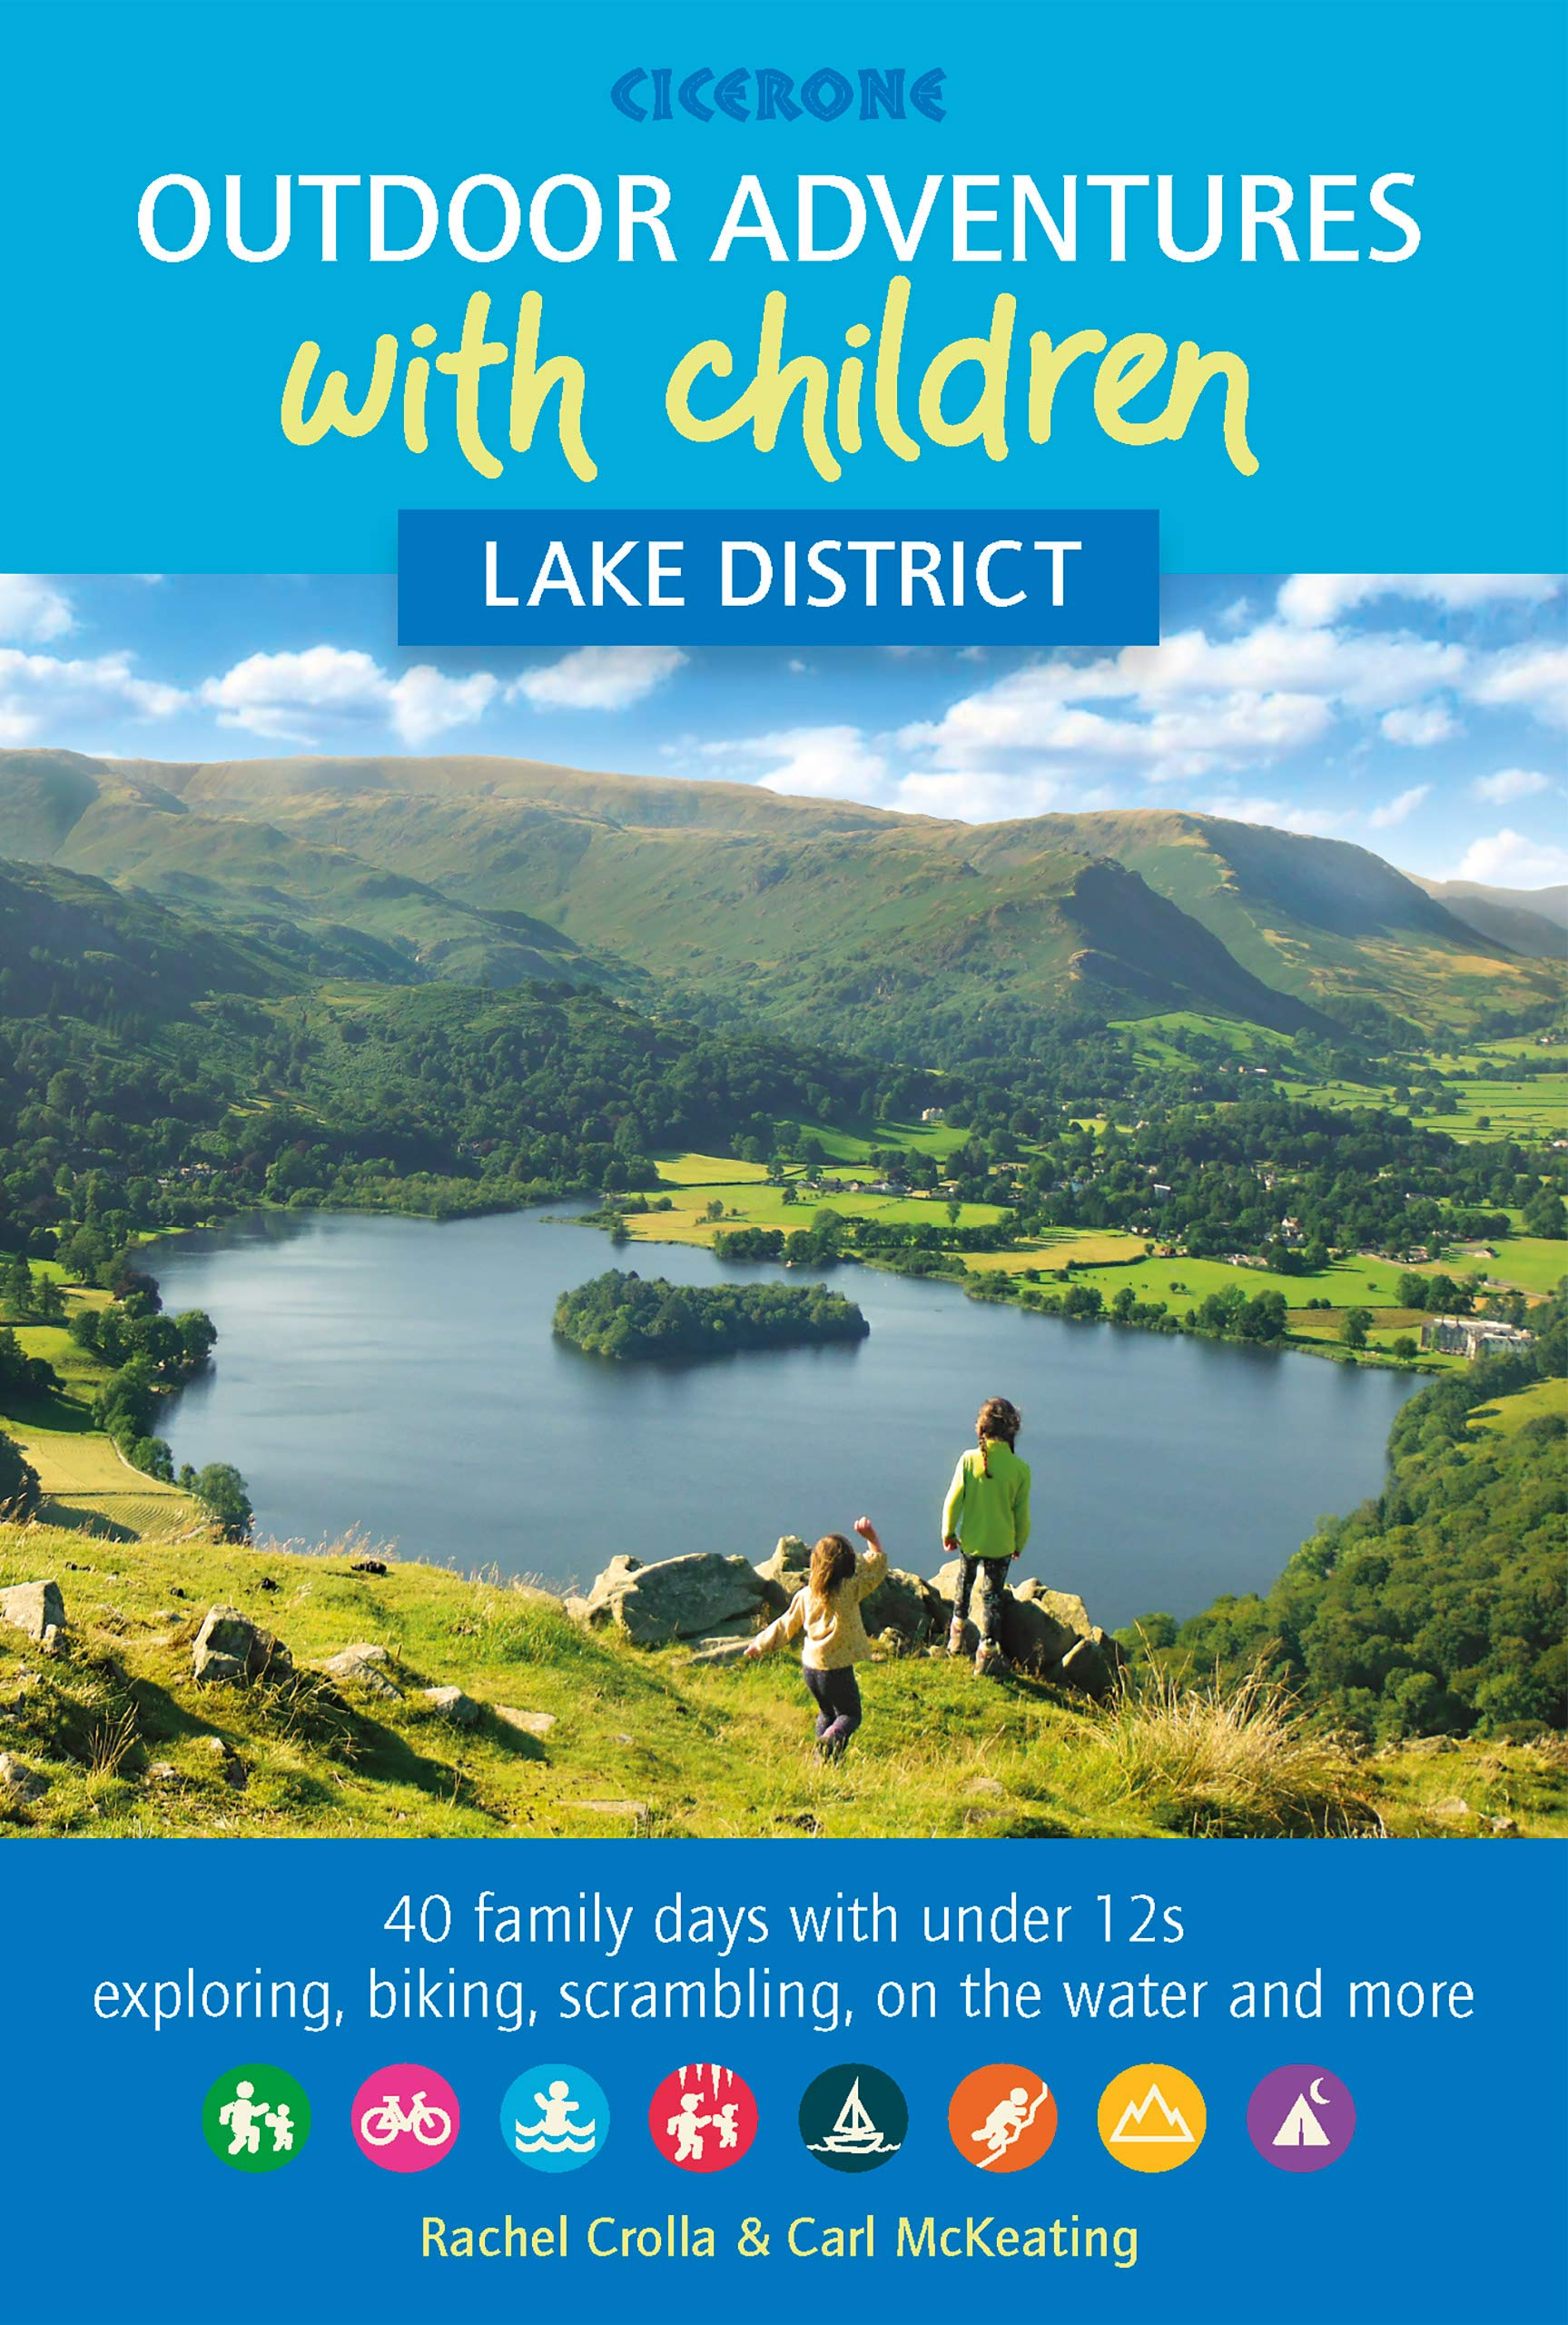 Outdoor Adventures With Children   Lake District  40 Family Days With Under 12s Exploring Biking Scrambling Paddling And More  Adventures For Children